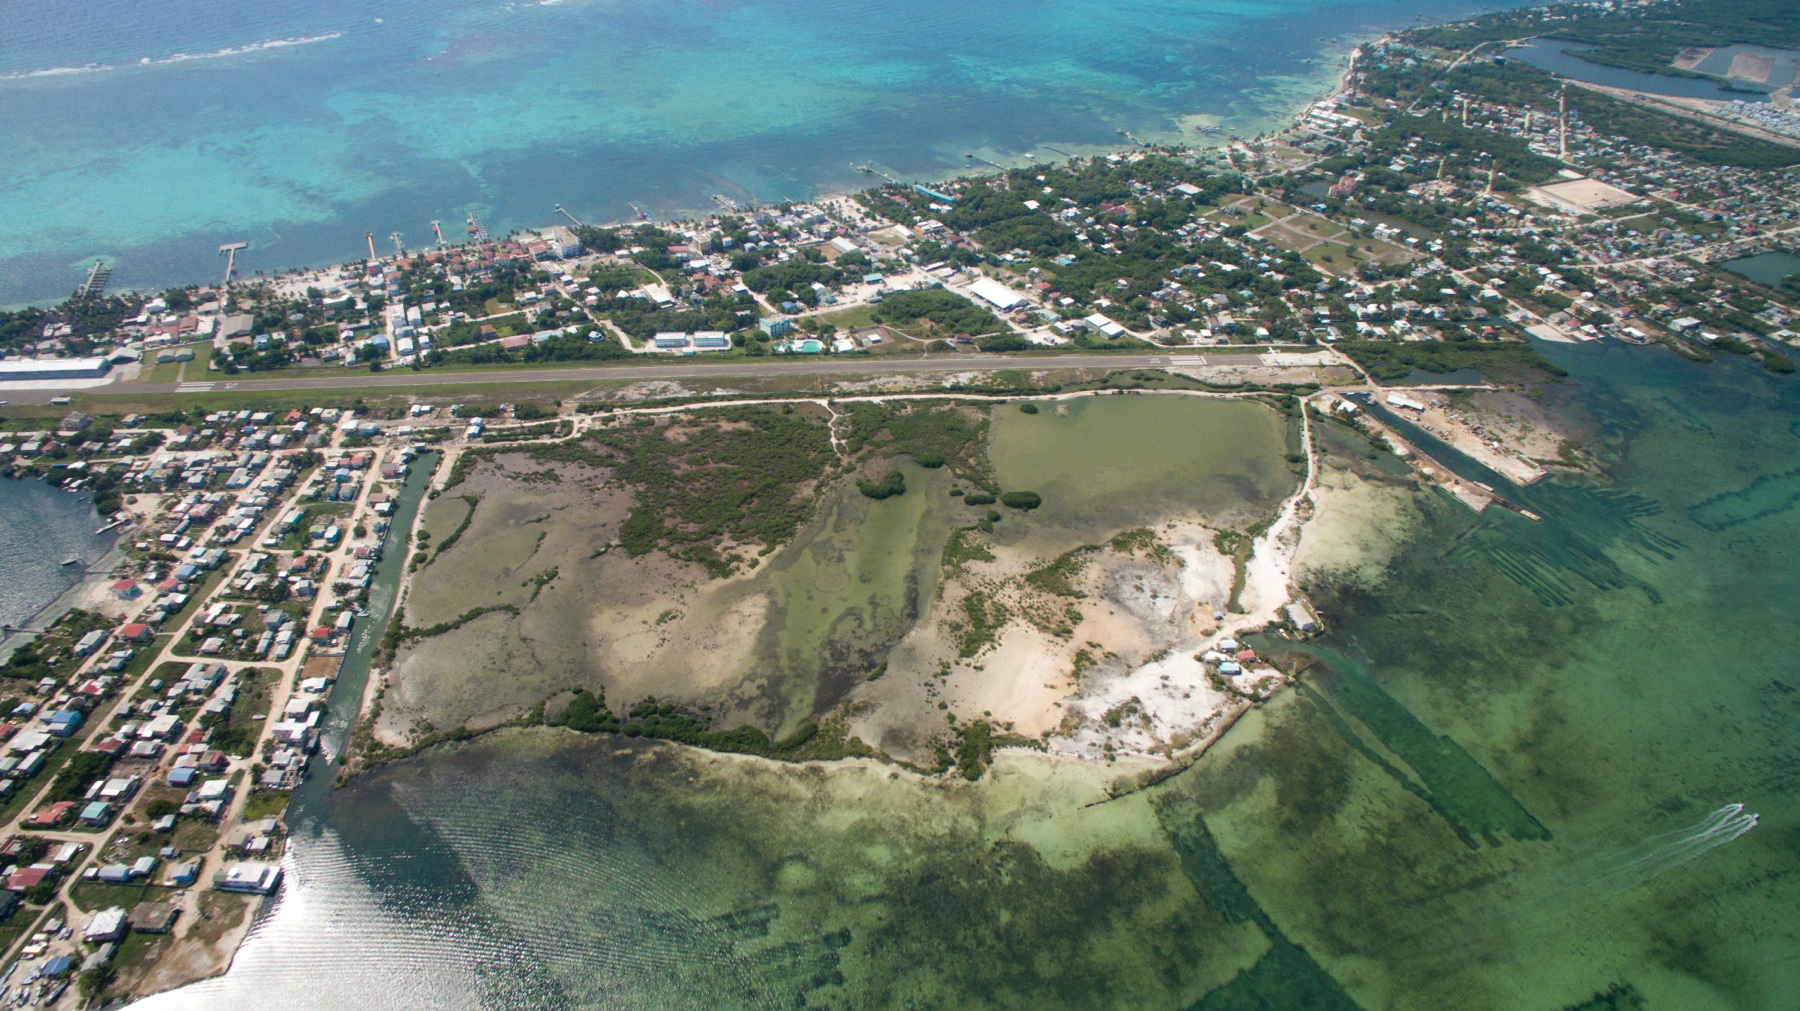 Đất đai vì Bán tại 80 Acres Available in Prime Location in San Pedro Town San Pedro Town, Ambergris Caye, Belize